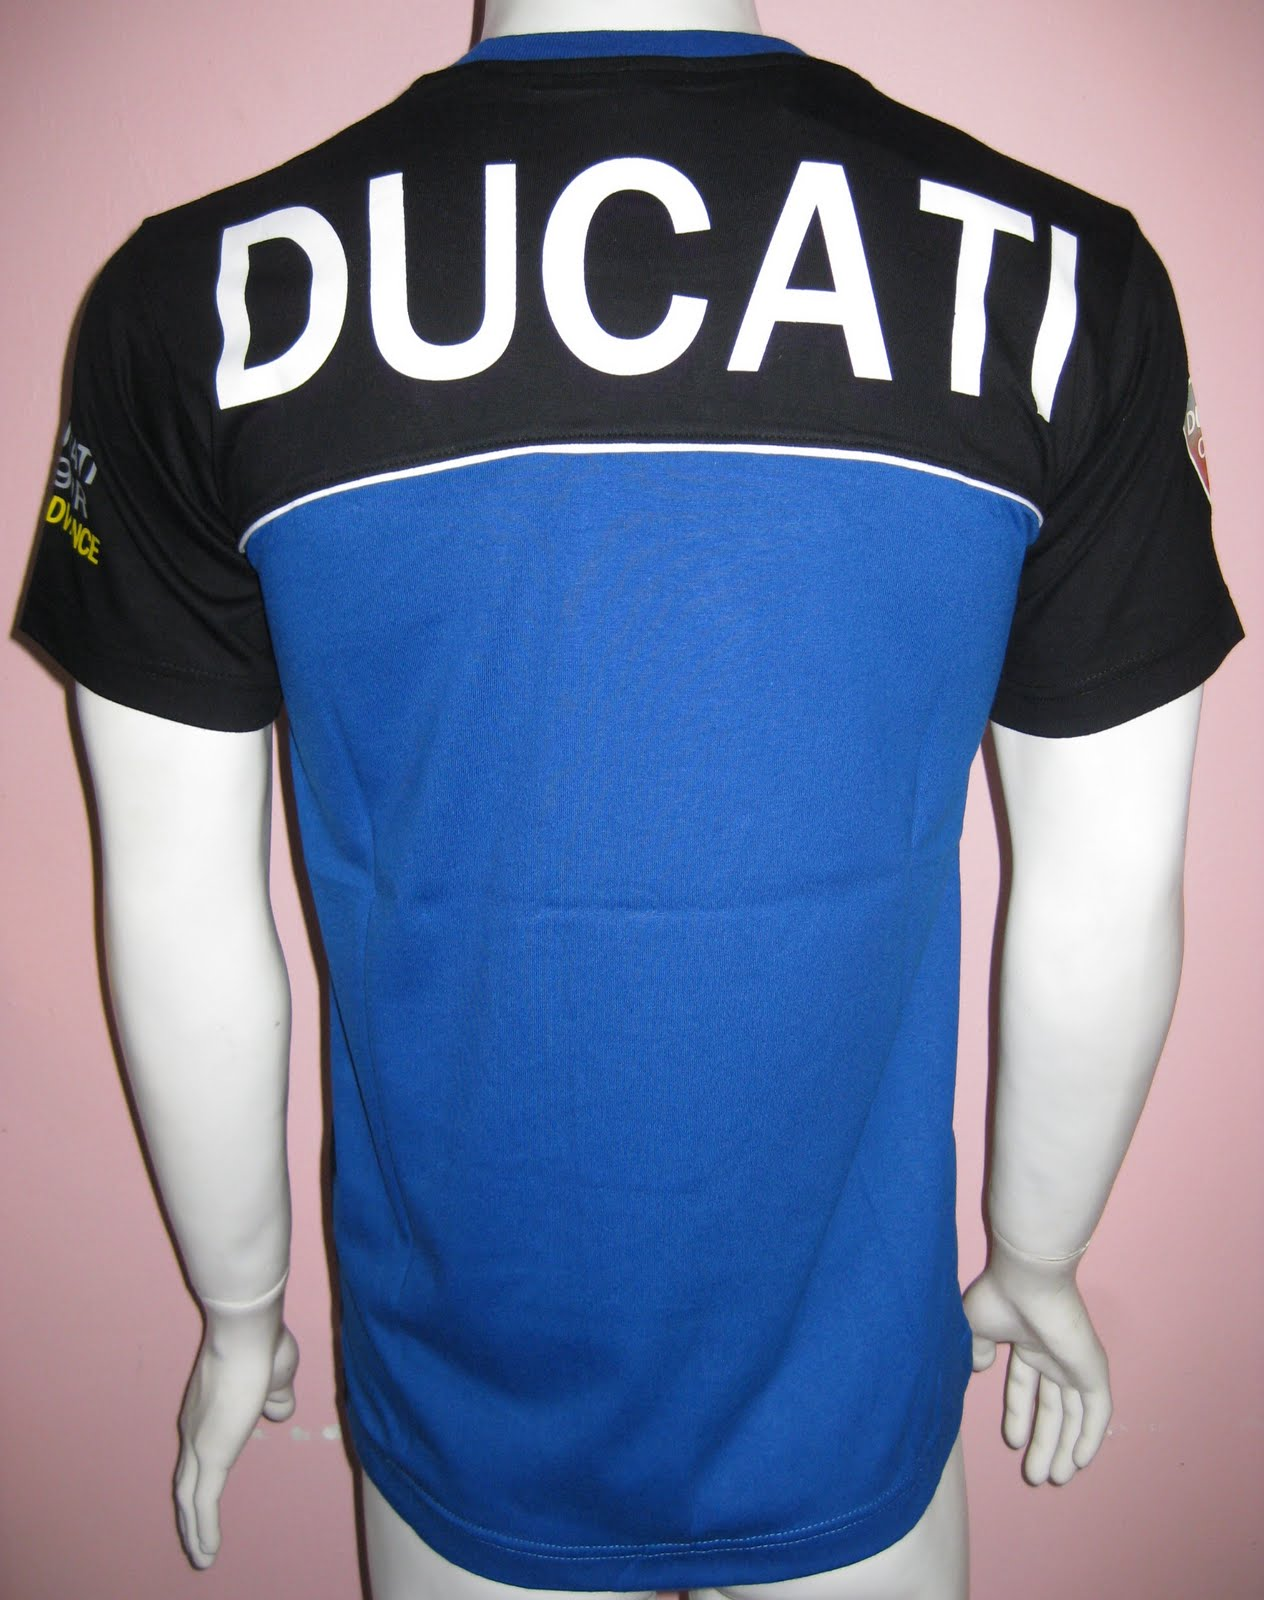 ducati t shirt. Black Bedroom Furniture Sets. Home Design Ideas